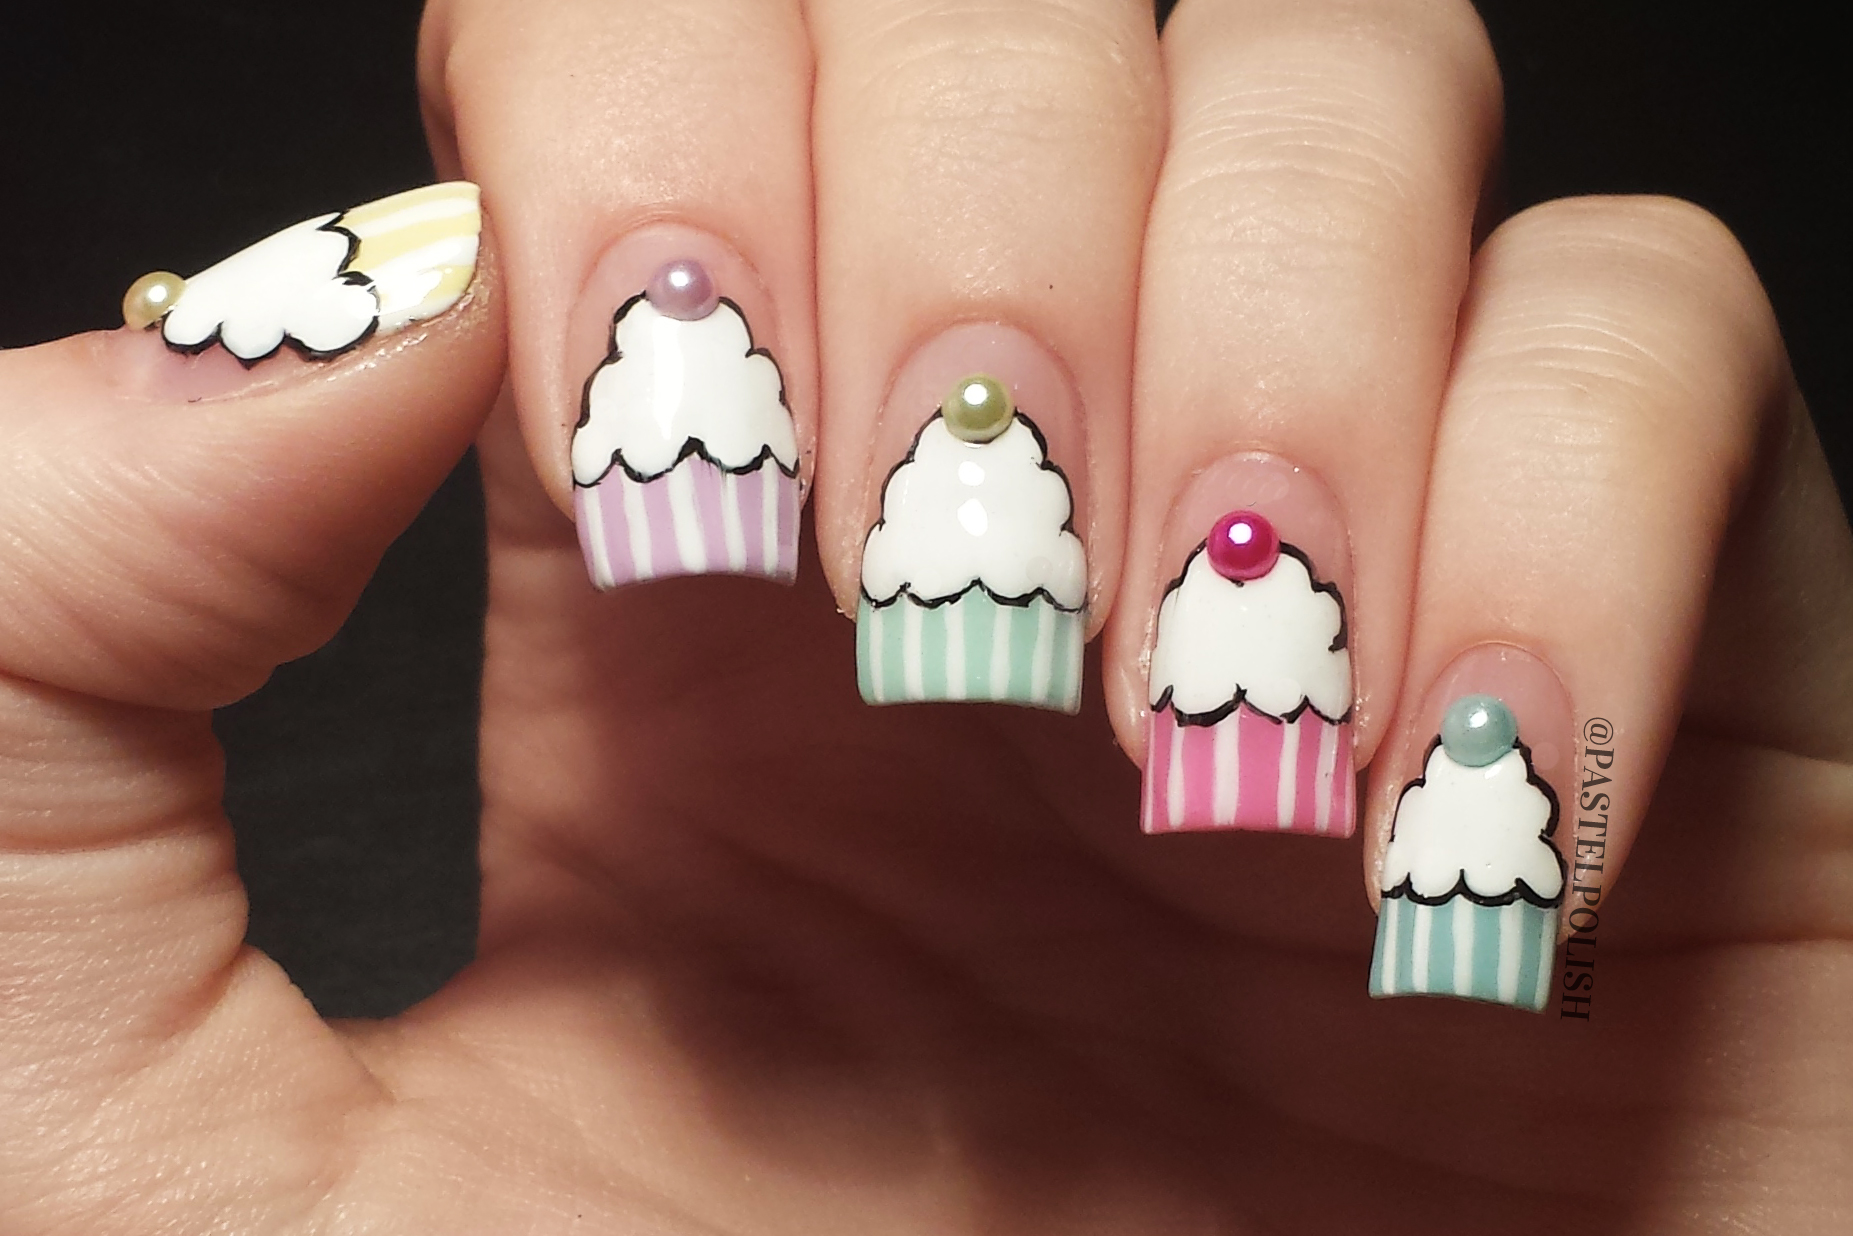 30 Awesome Cupcake Nail Art Designs 2015/16